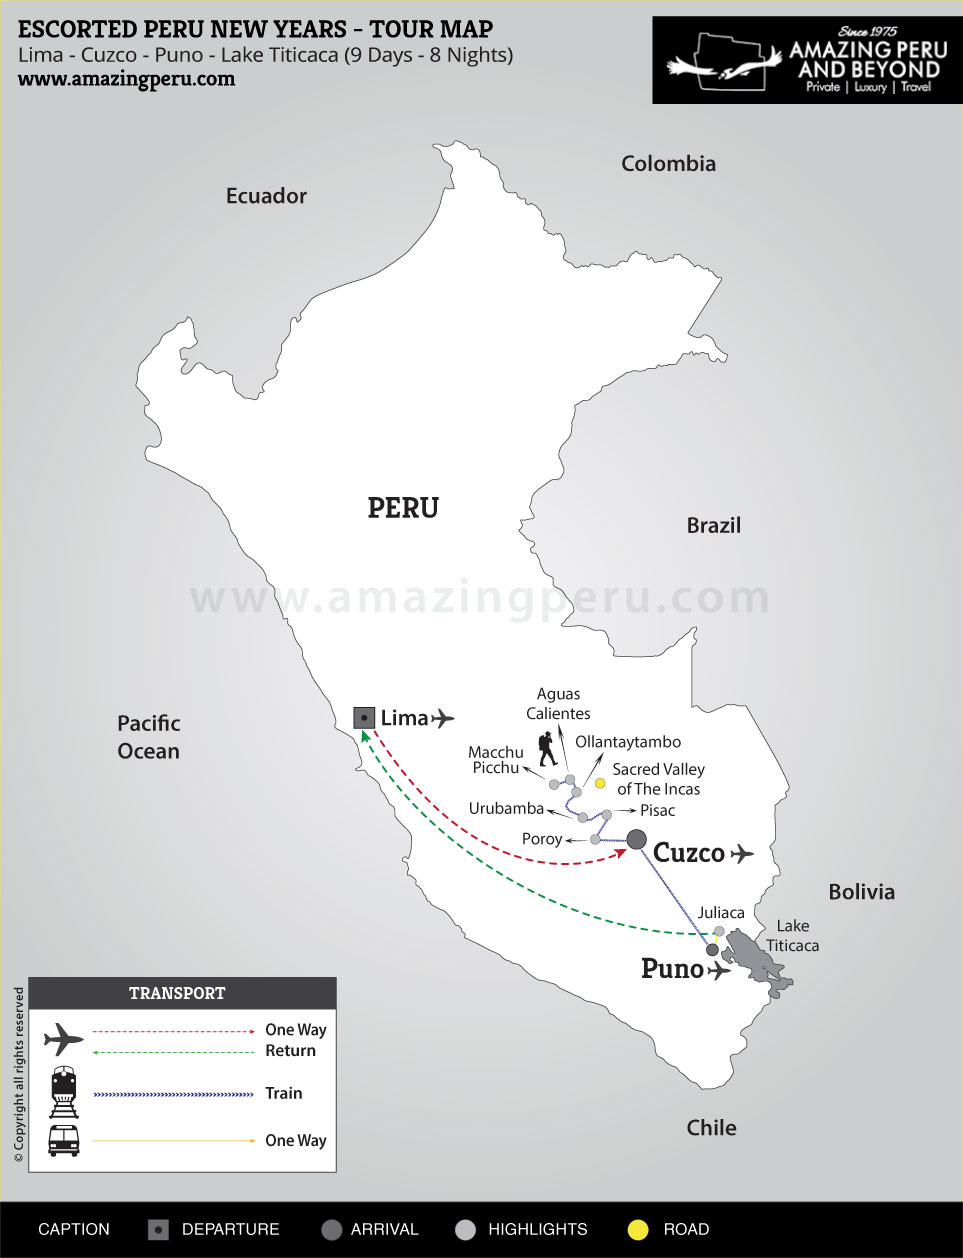 2017-18 Escorted Peru New Years 1 - 9 days / 8 nights.